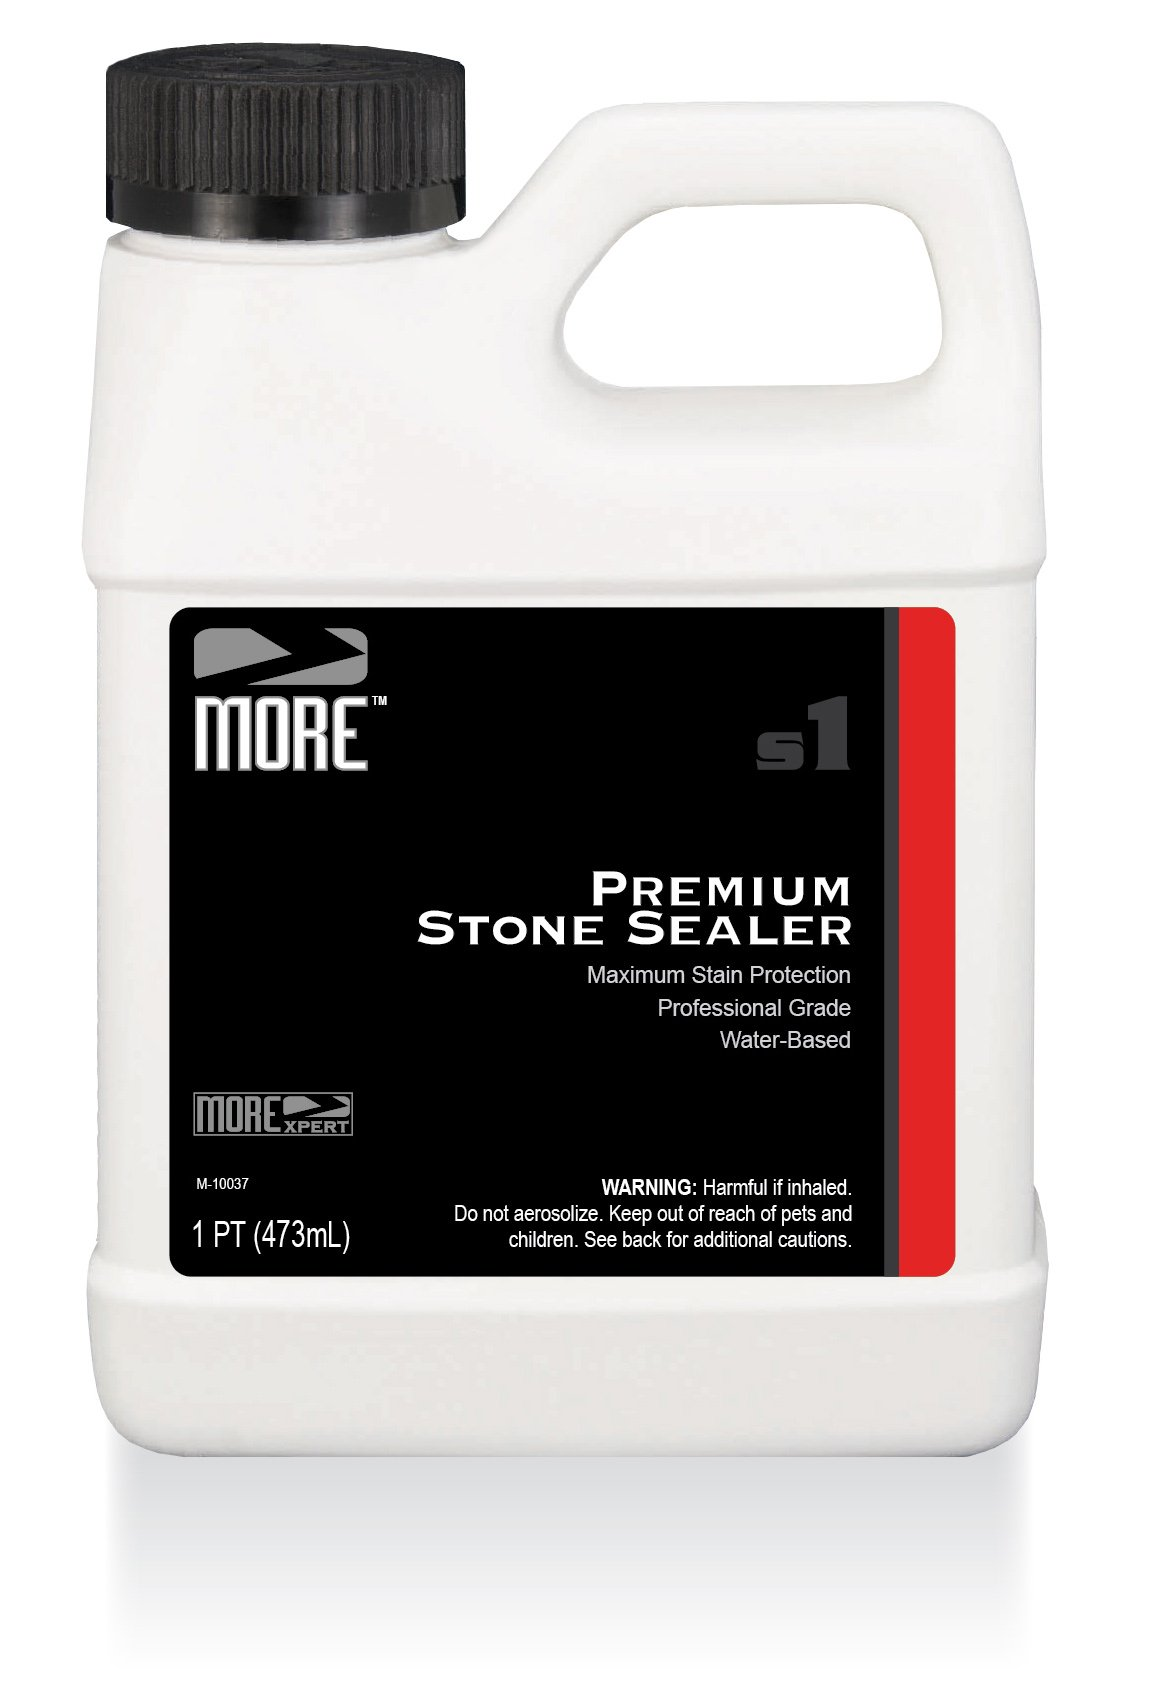 MORE Premium Stone Sealer - Gentle, Water Based Formula - Protection for Natural Stone and Tile Surfaces [Pint / 16 Oz.]